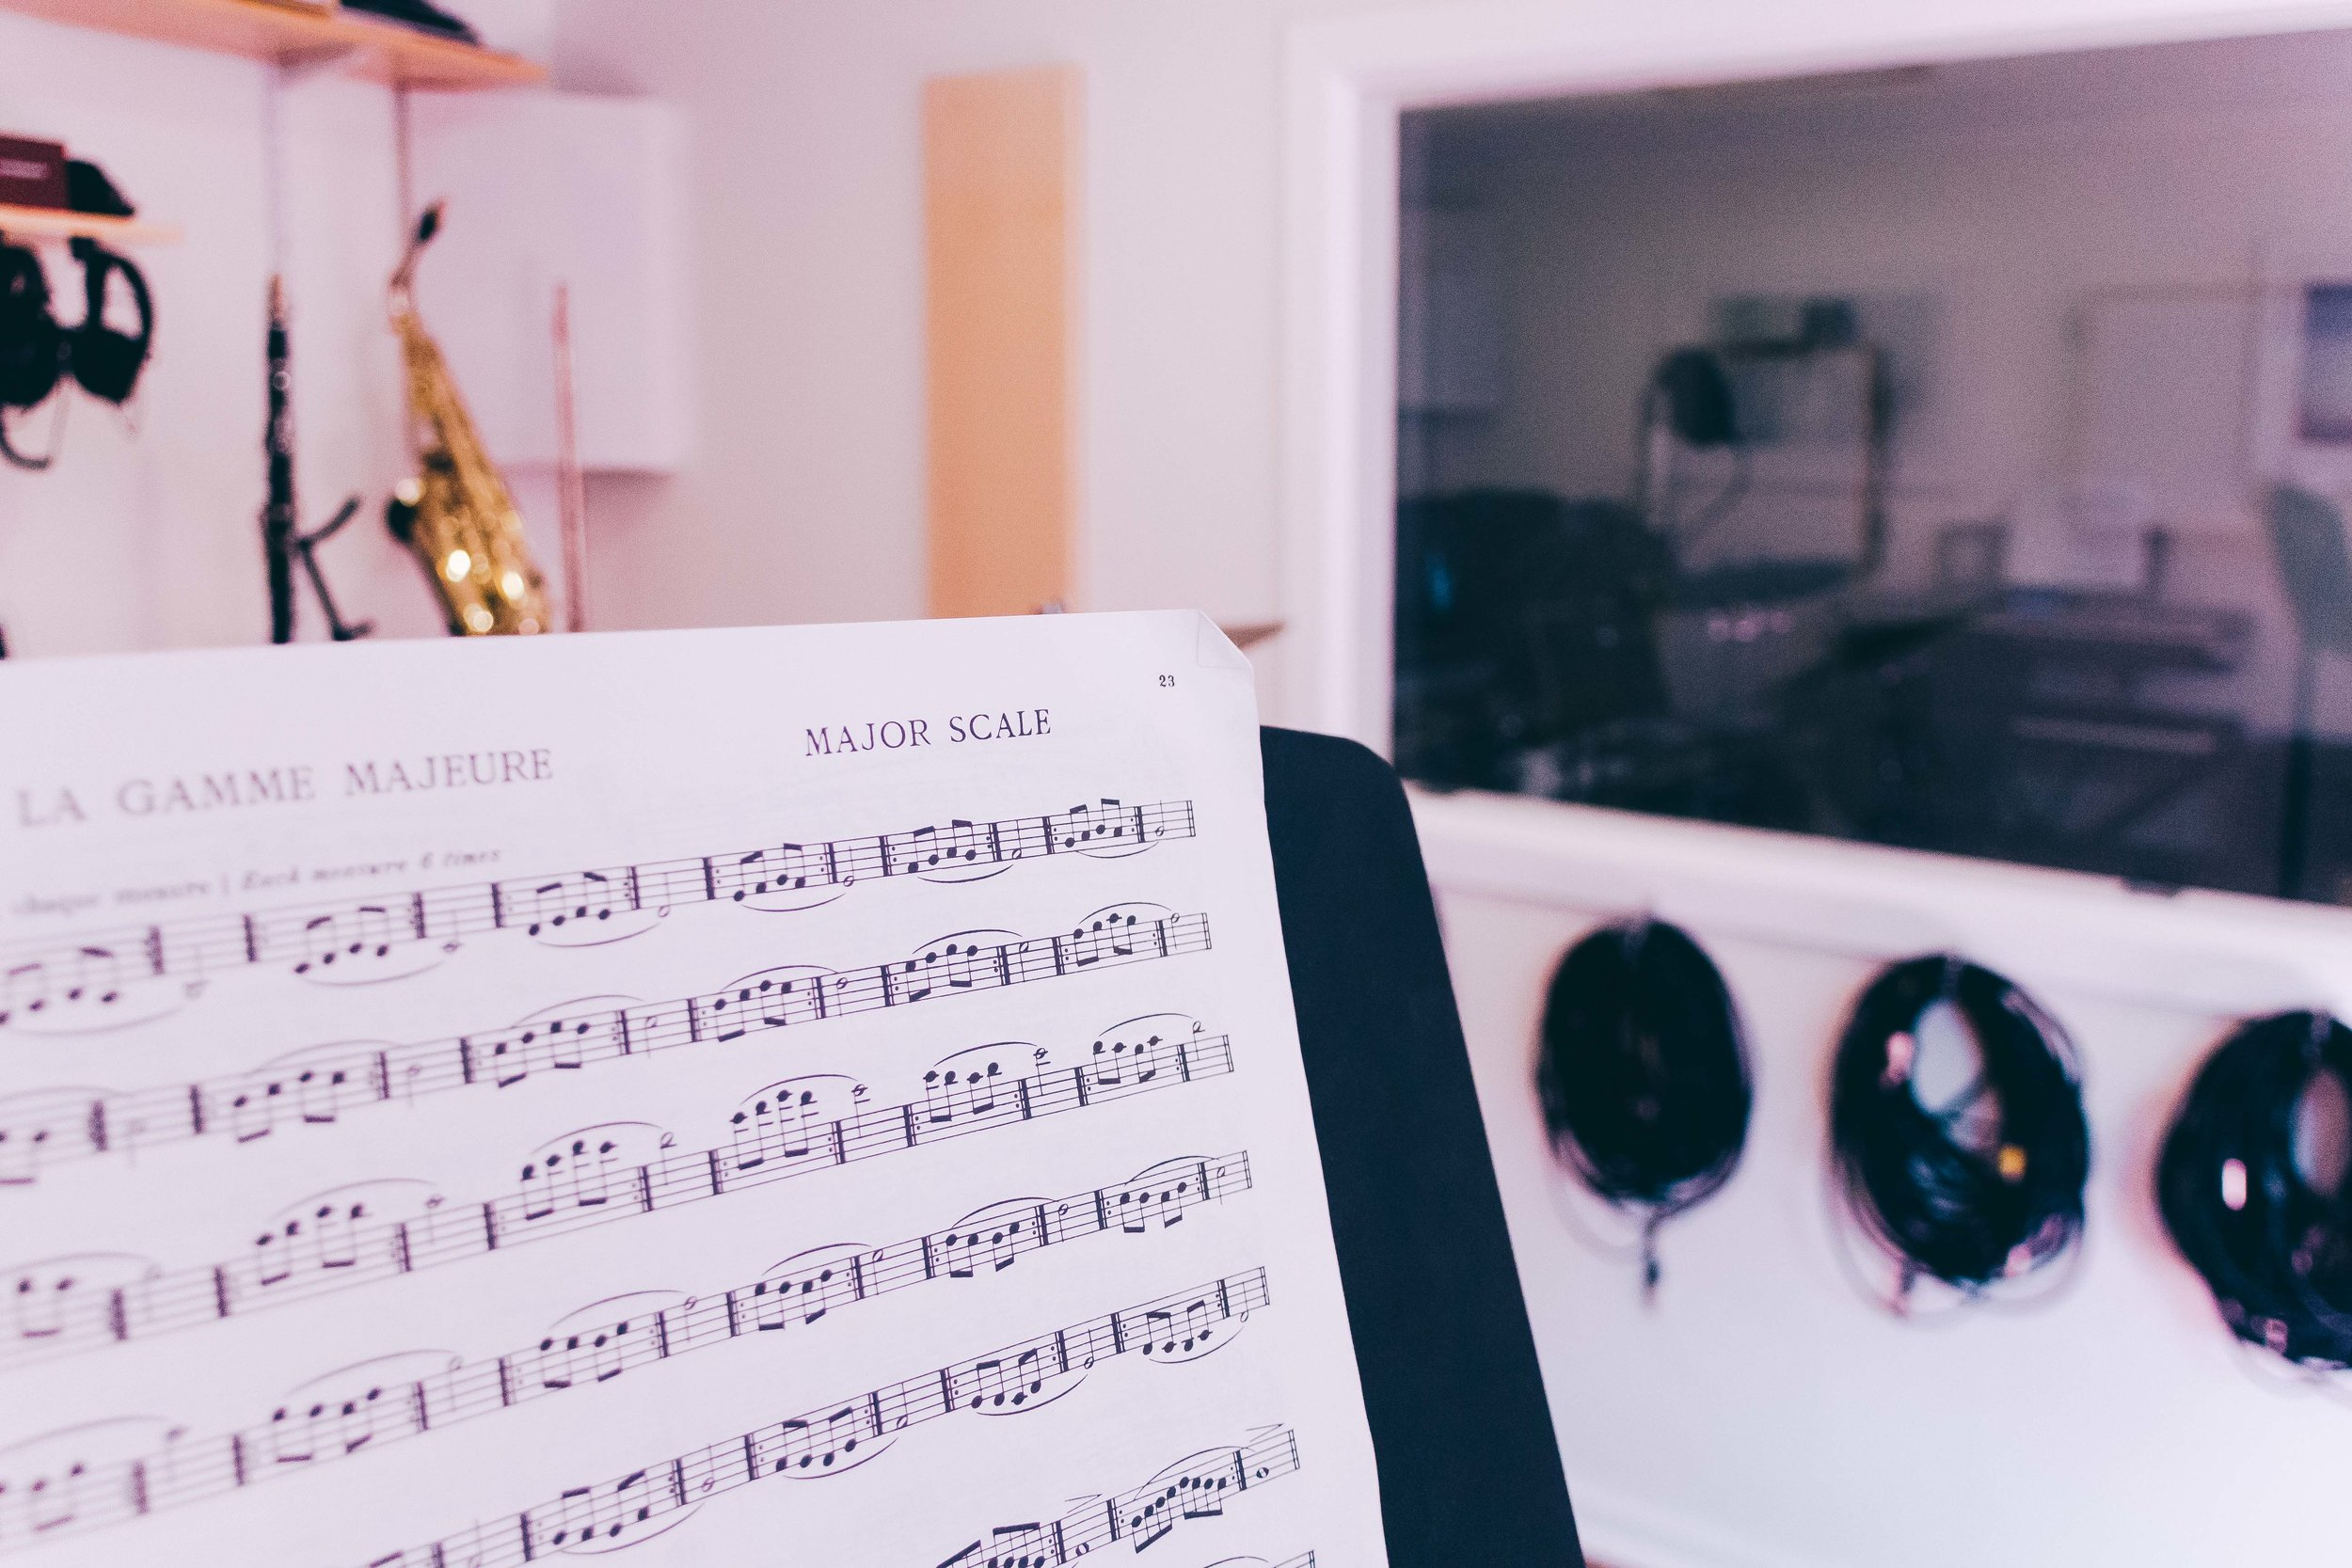 Learn to read music at Heavy Feet Studios in Wallsend, Newcastle